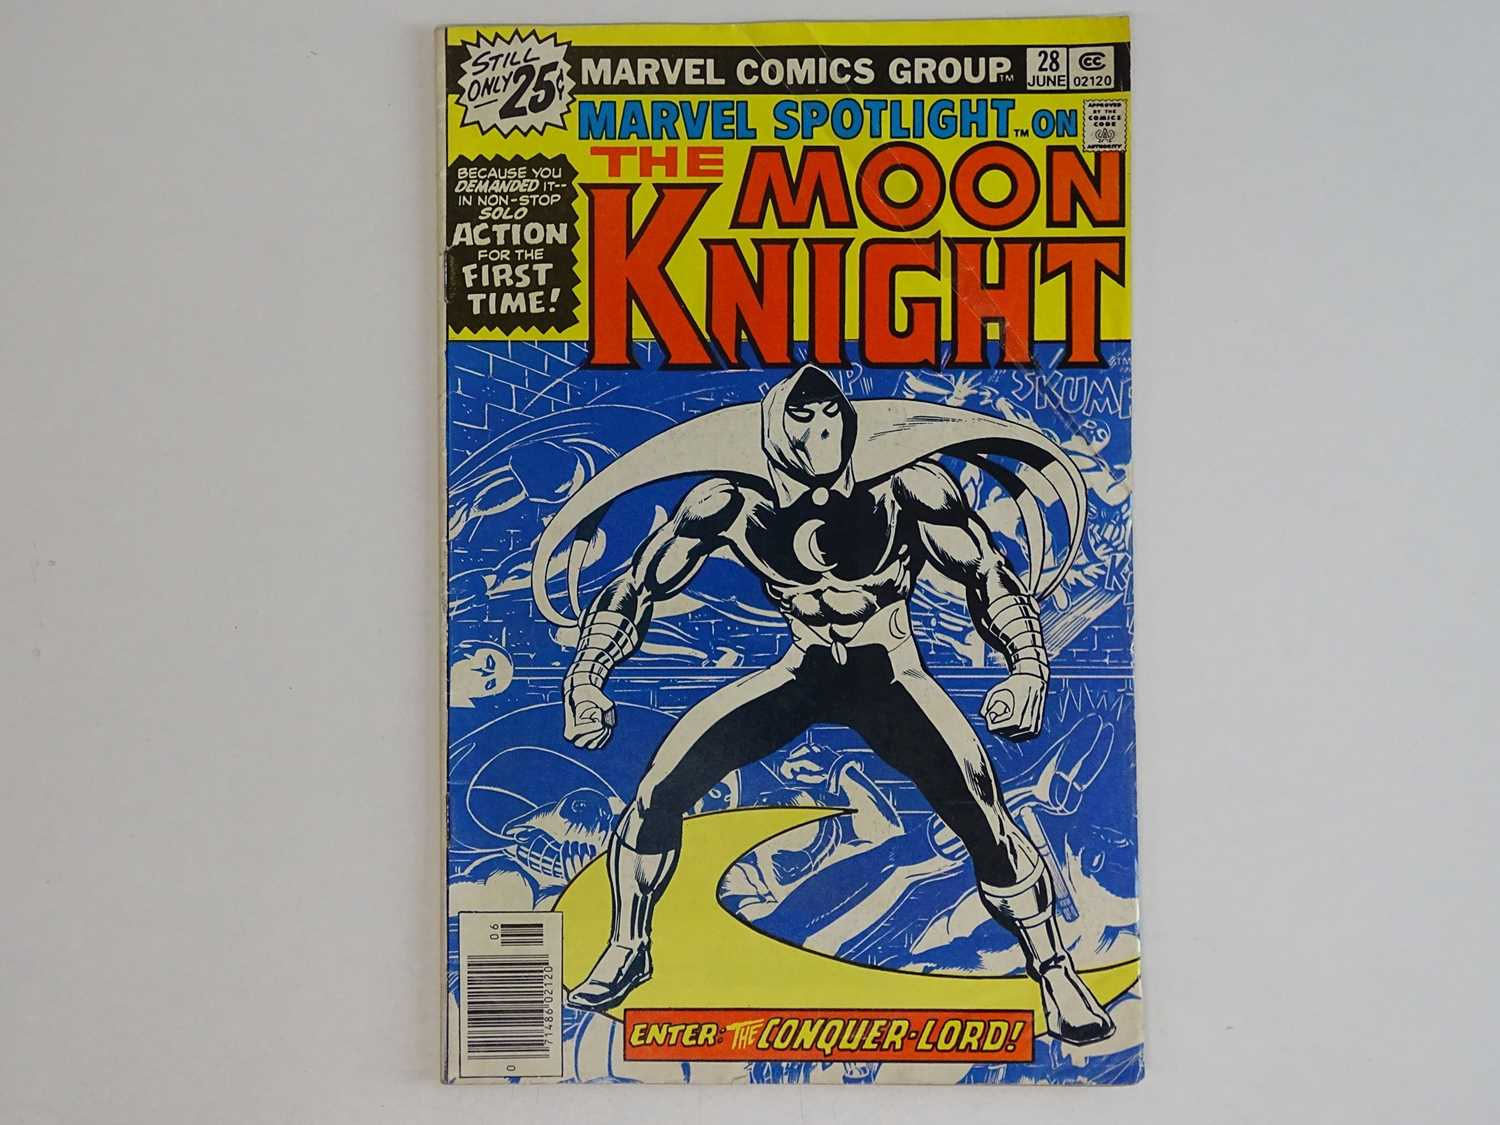 MARVEL SPOTLIGHT #28 - (1976 - MARVEL) - Moon Knight's First solo story + First time he appears as a